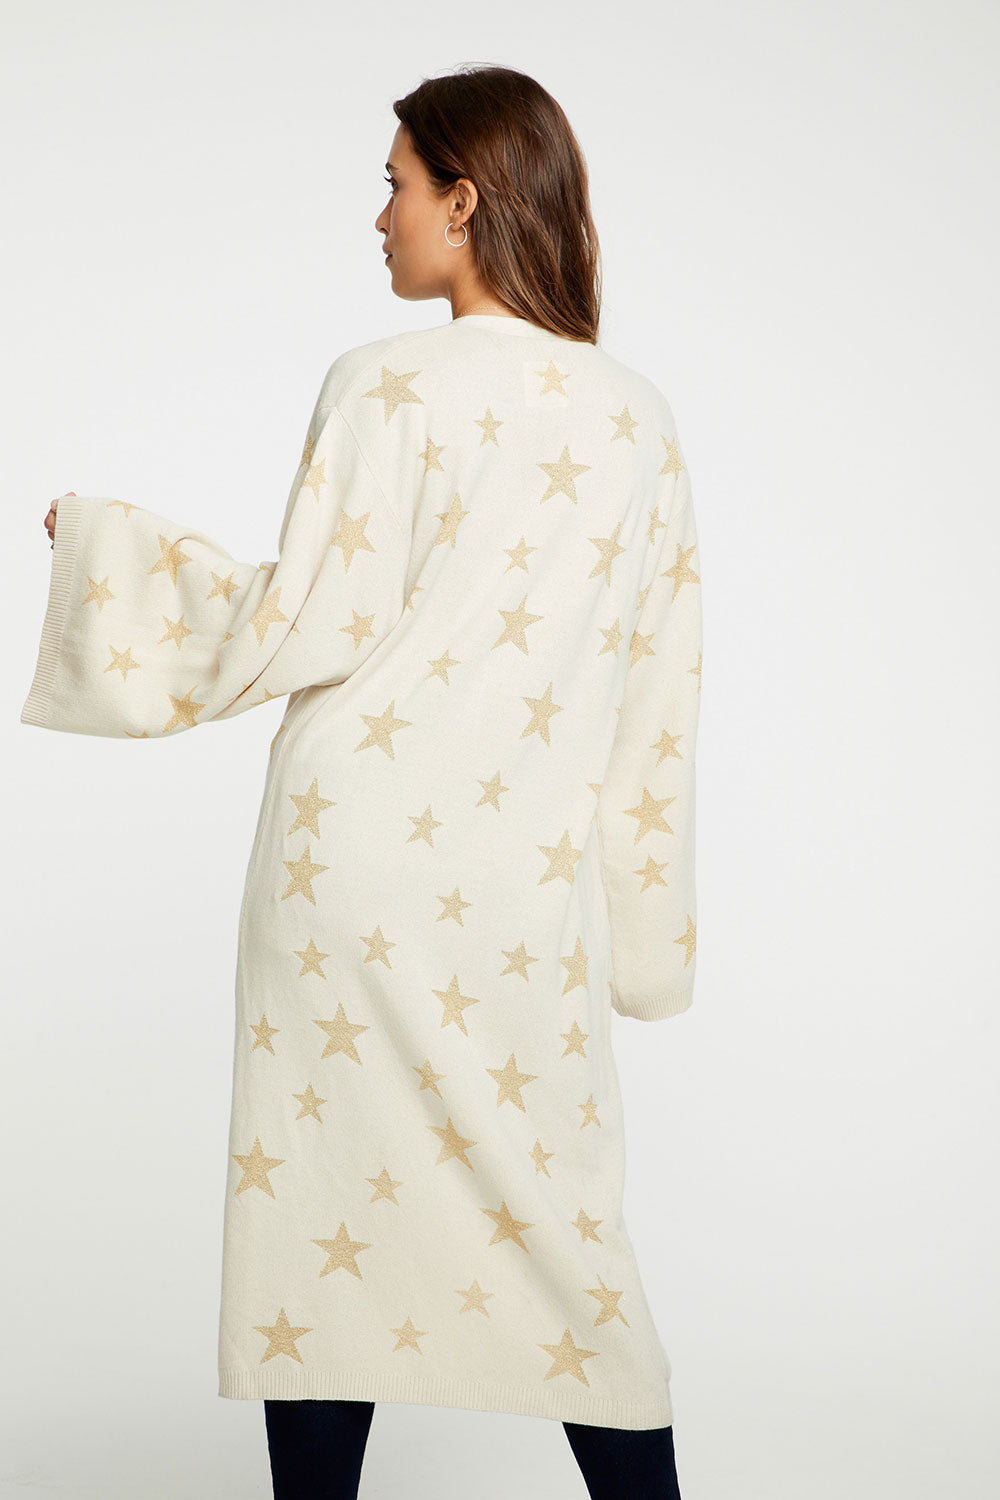 Star Intarsia Duster WOMENS chaserbrand4.myshopify.com